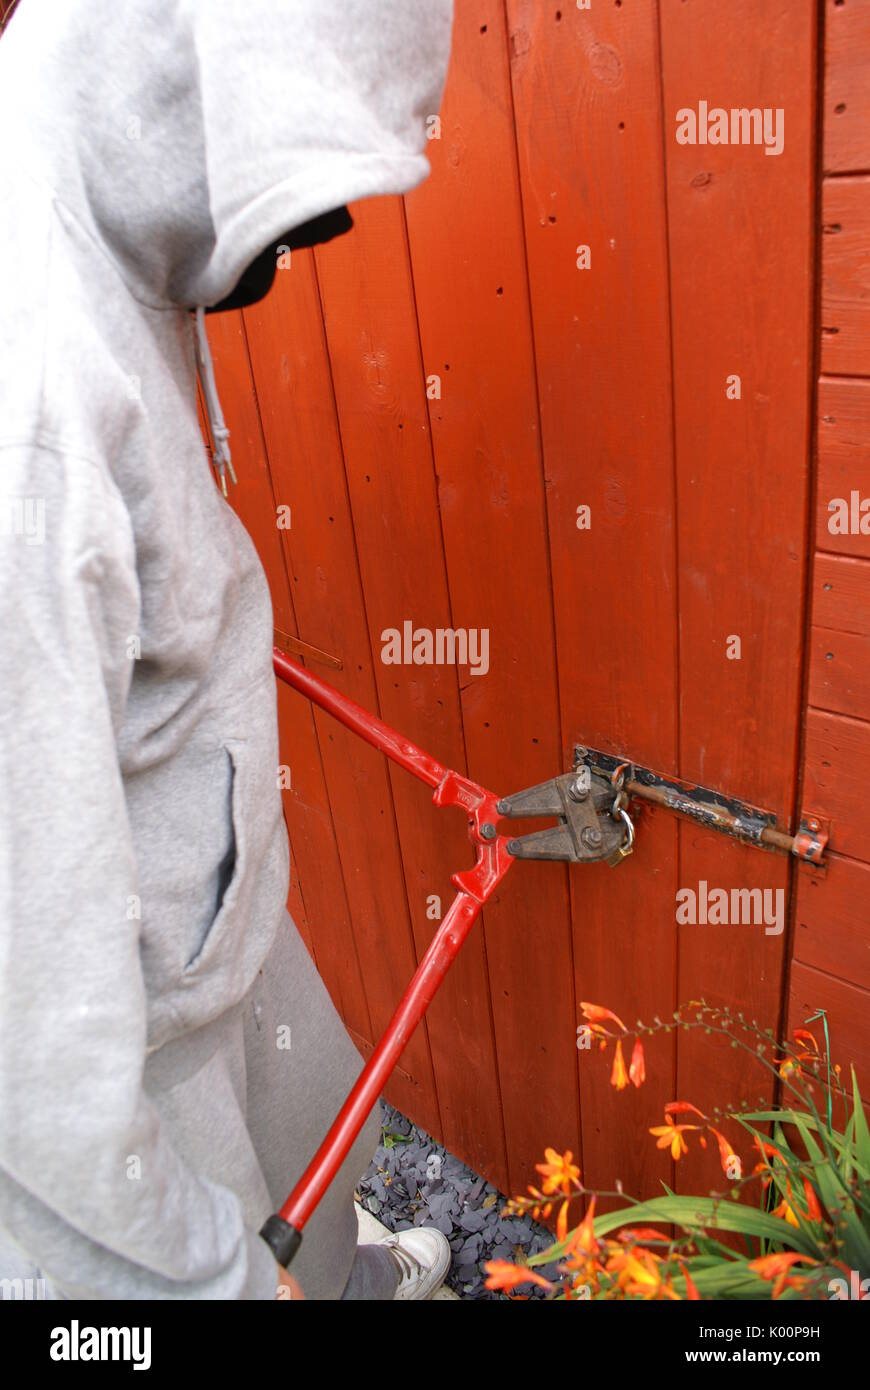 burglary, theft form garden shed - Stock Image